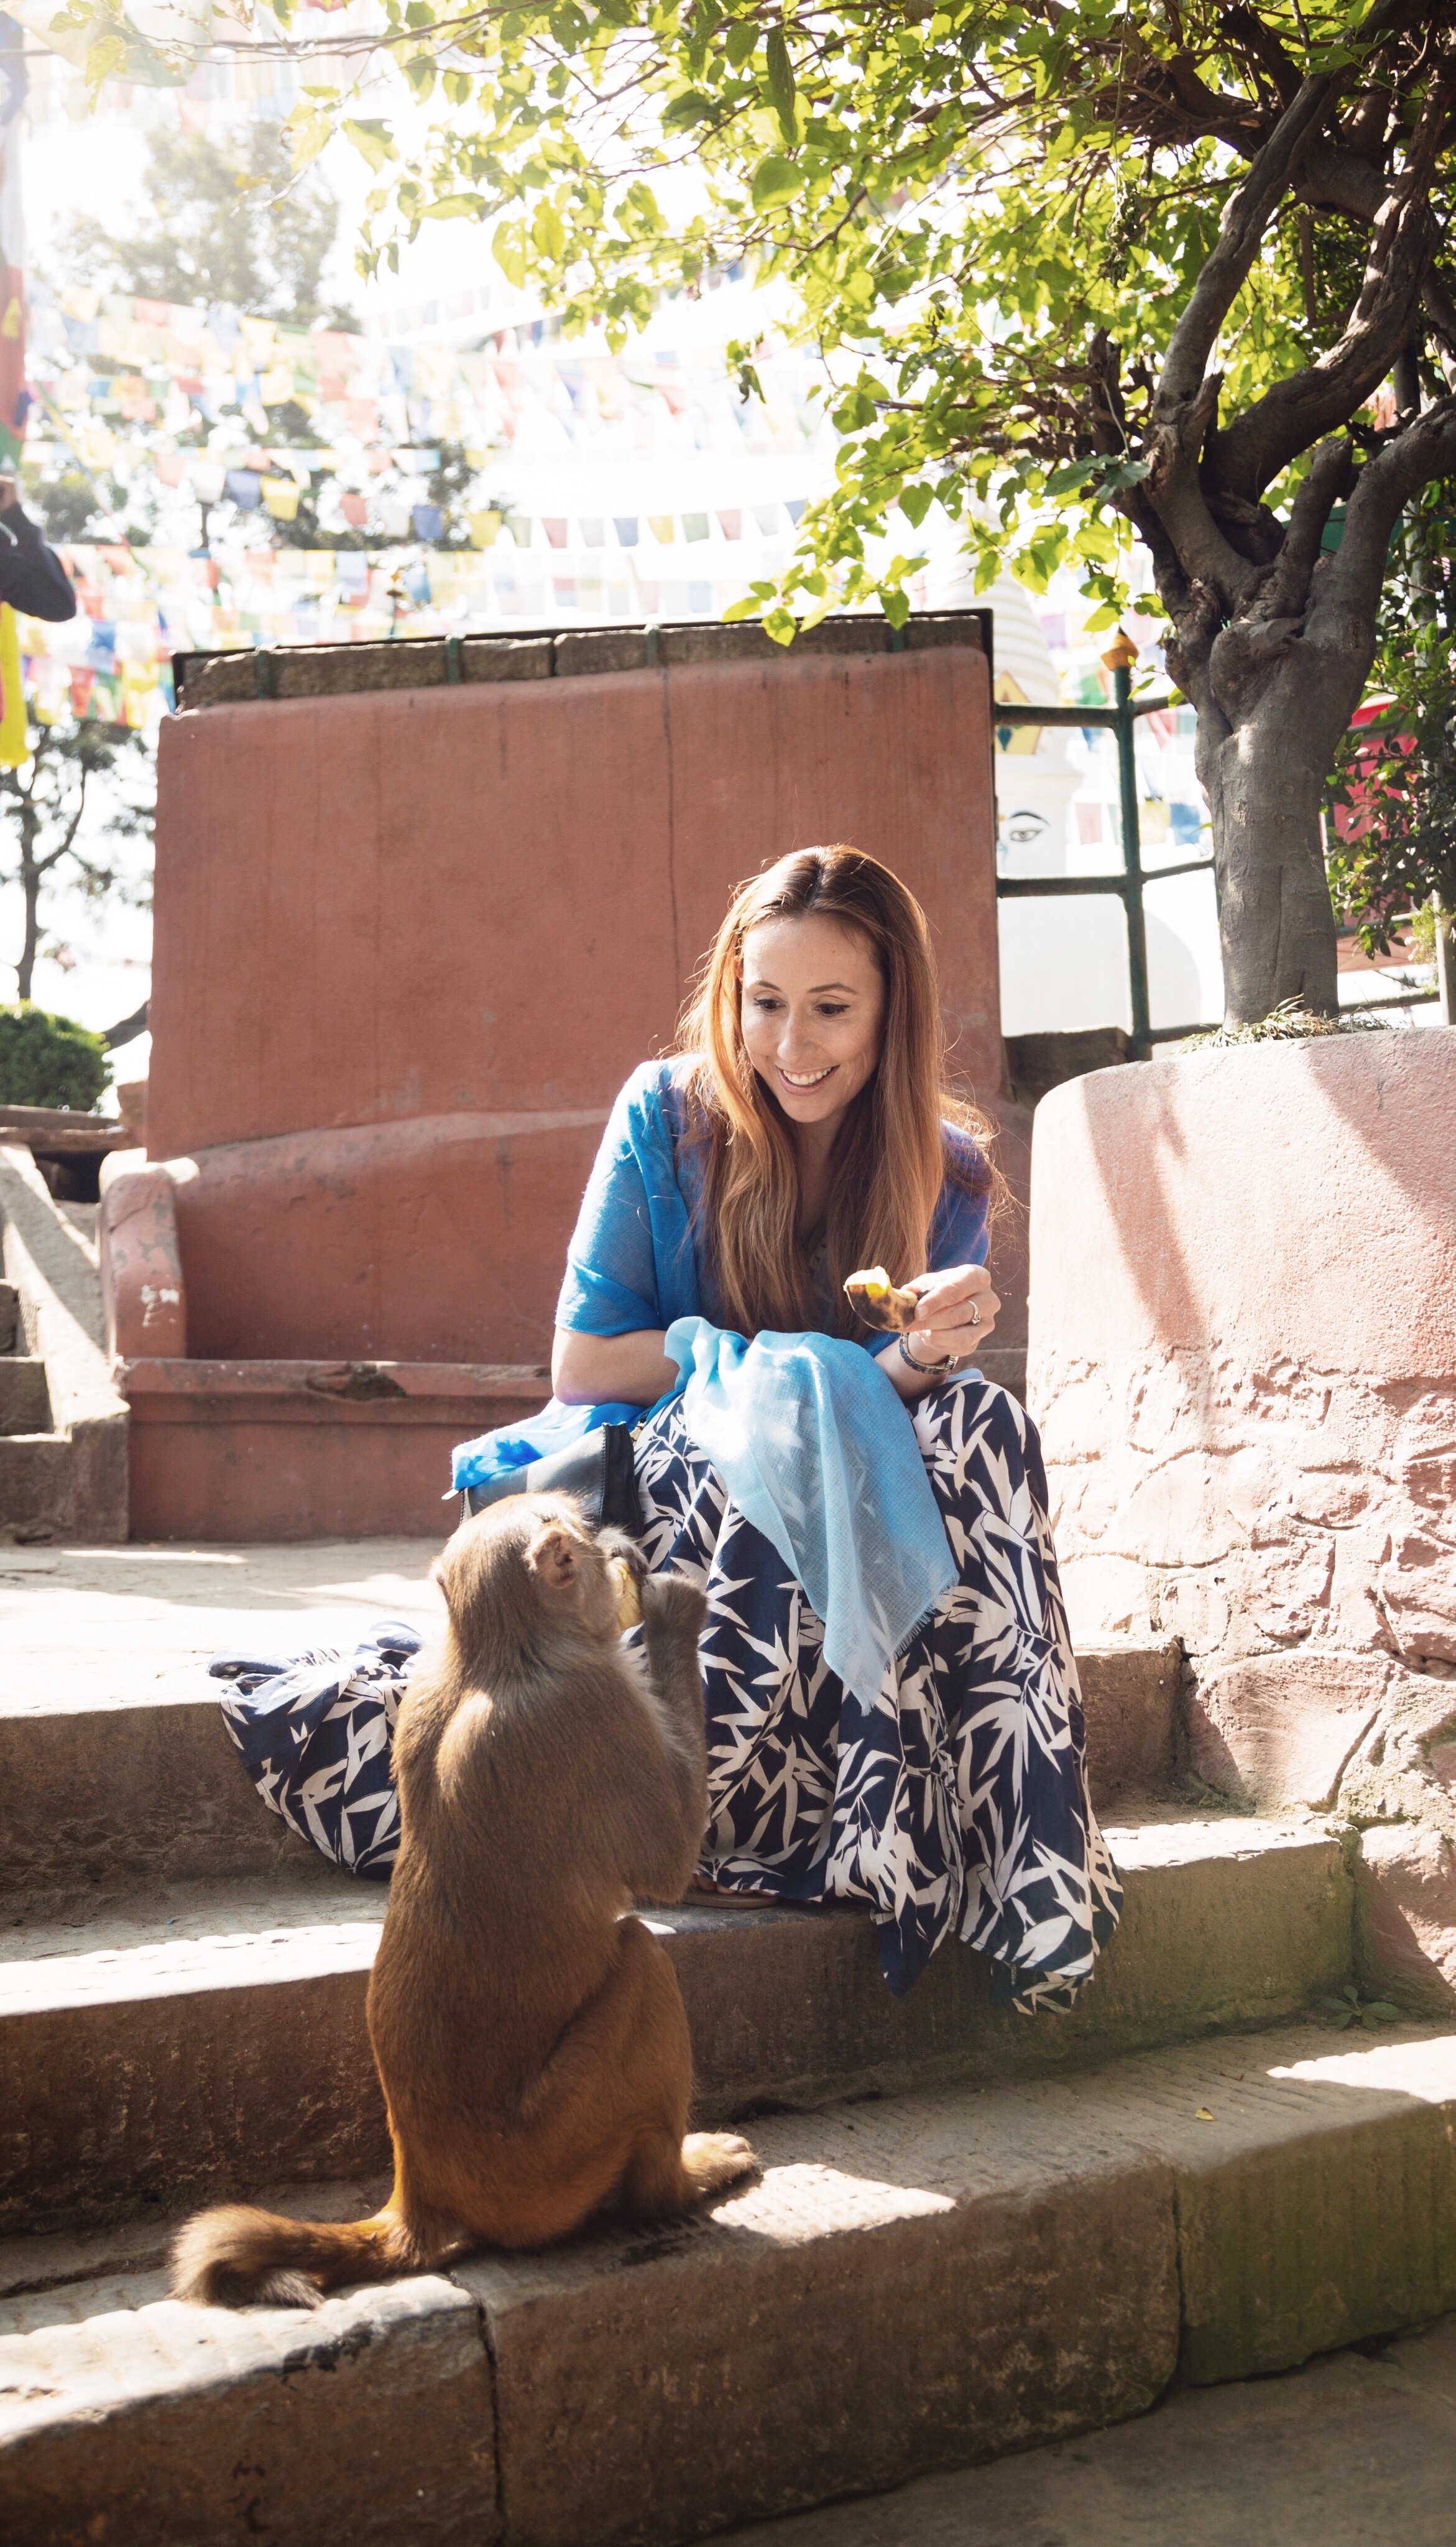 monkey temple nepal trusted travel guide girl